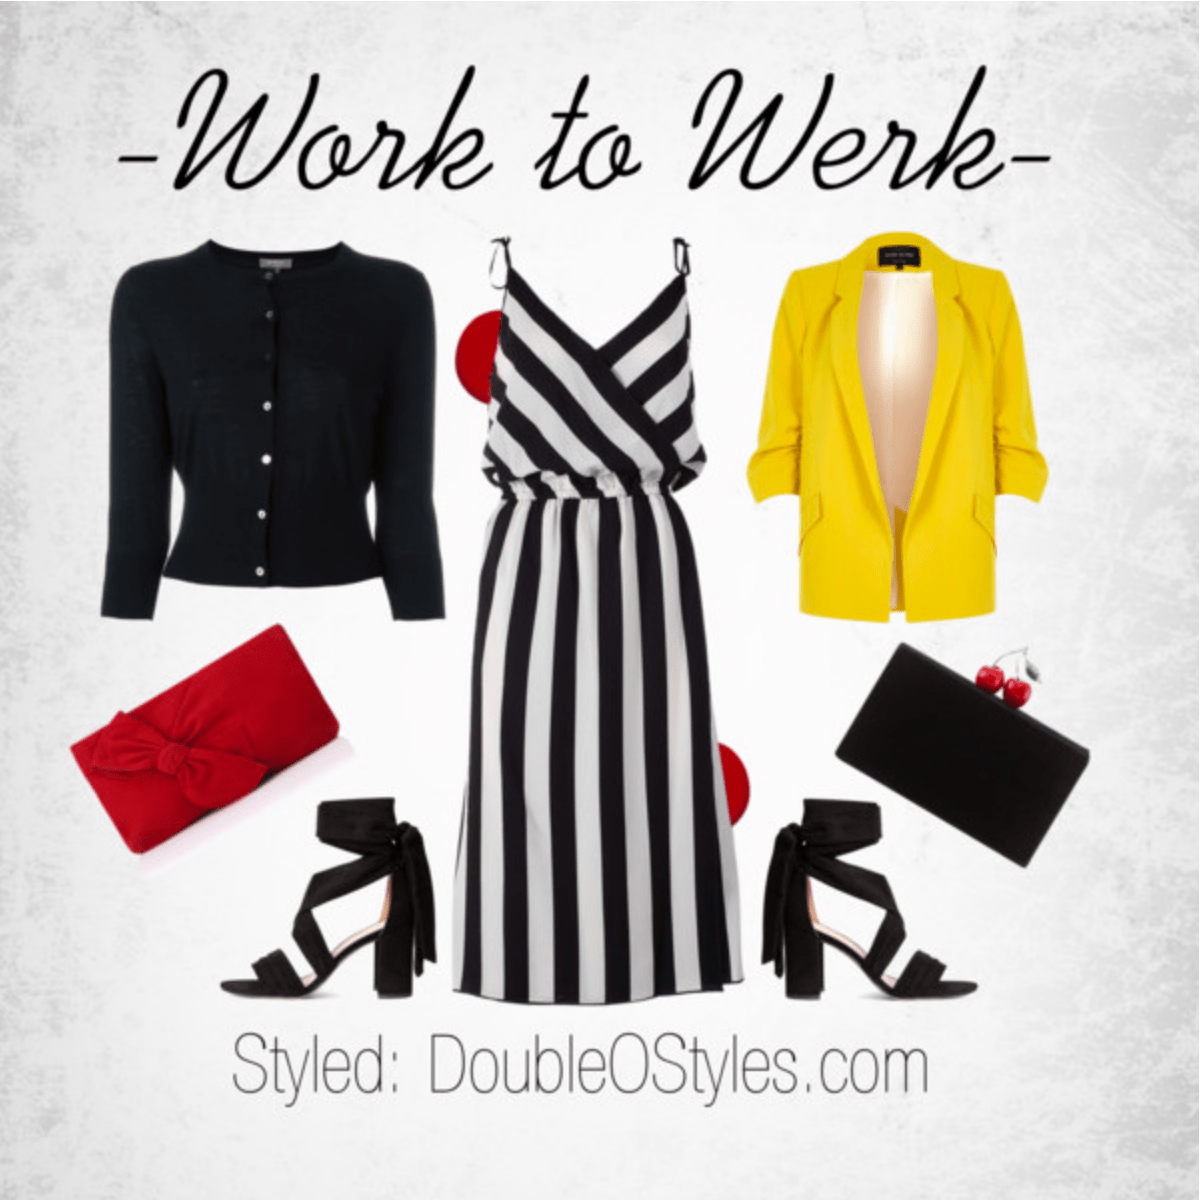 Tone it down in a black #cardigan with your pop of red and stripes ORRRR Brighten it up with the Yellow #Blazer with your pop of red and stripes! #workwear #womenstyle #polyvorefashion #fashionset